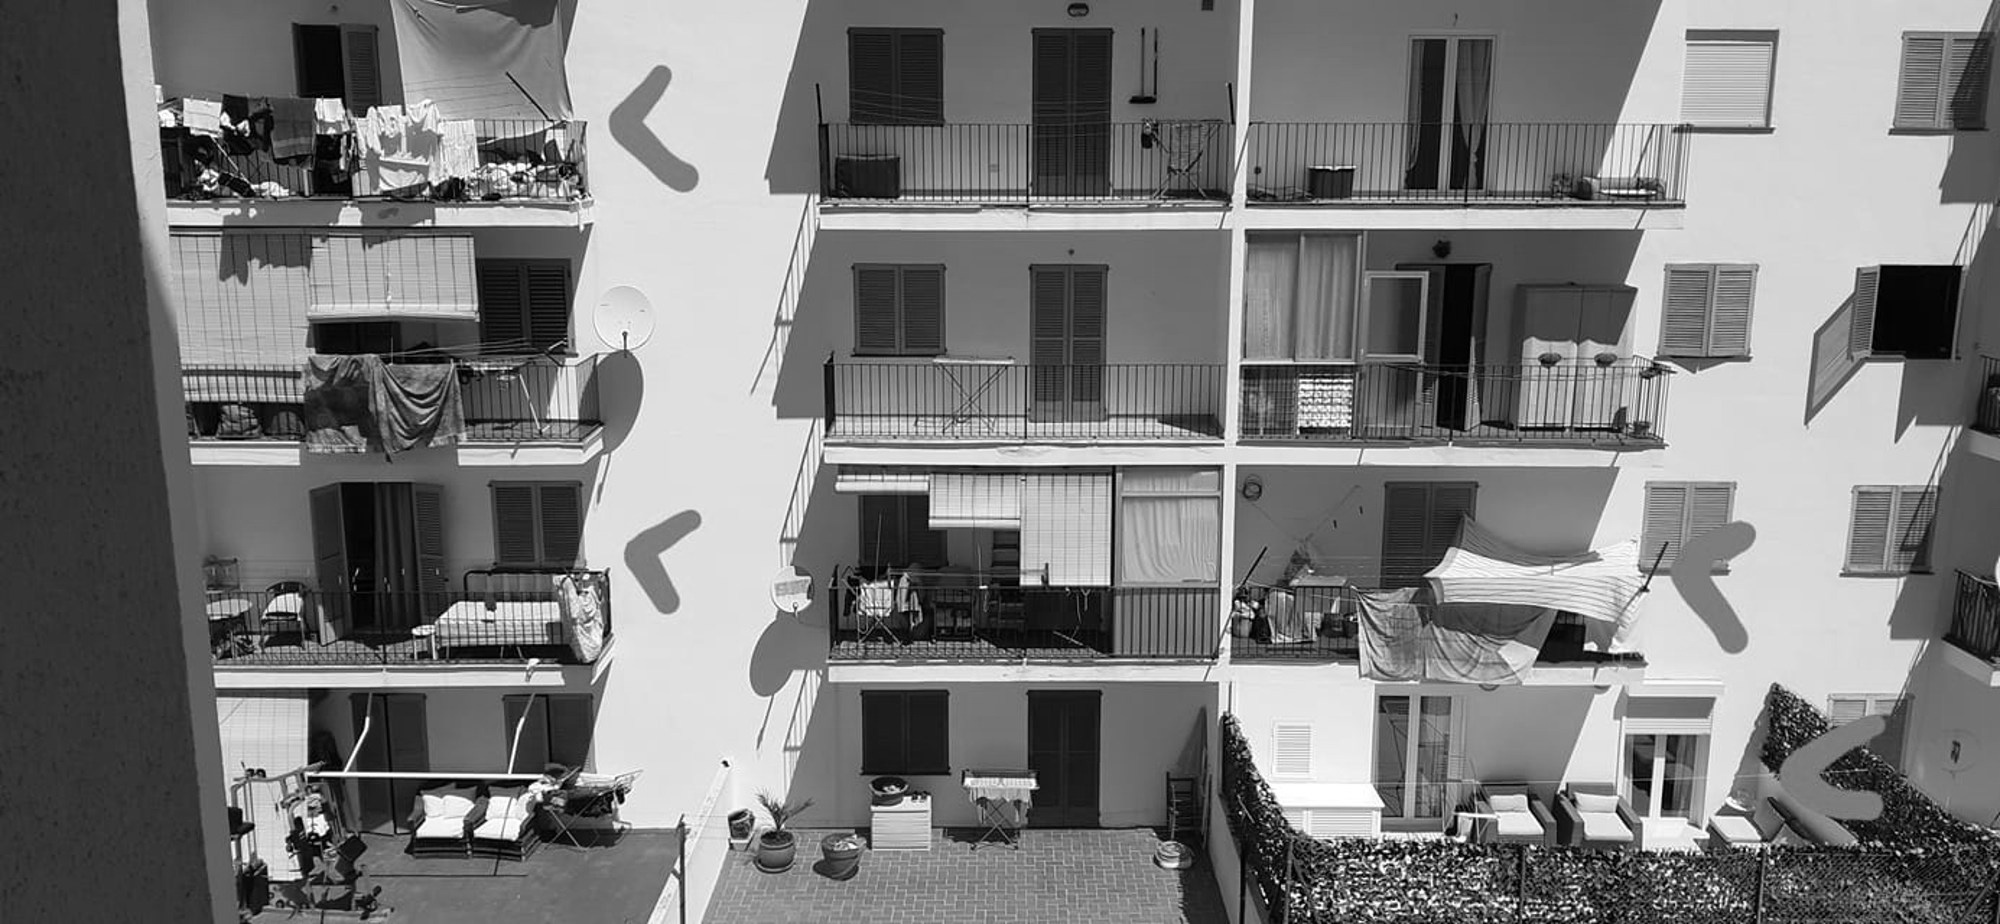 Ibiza Beds On Balconies Sold At 23 GBP A Night